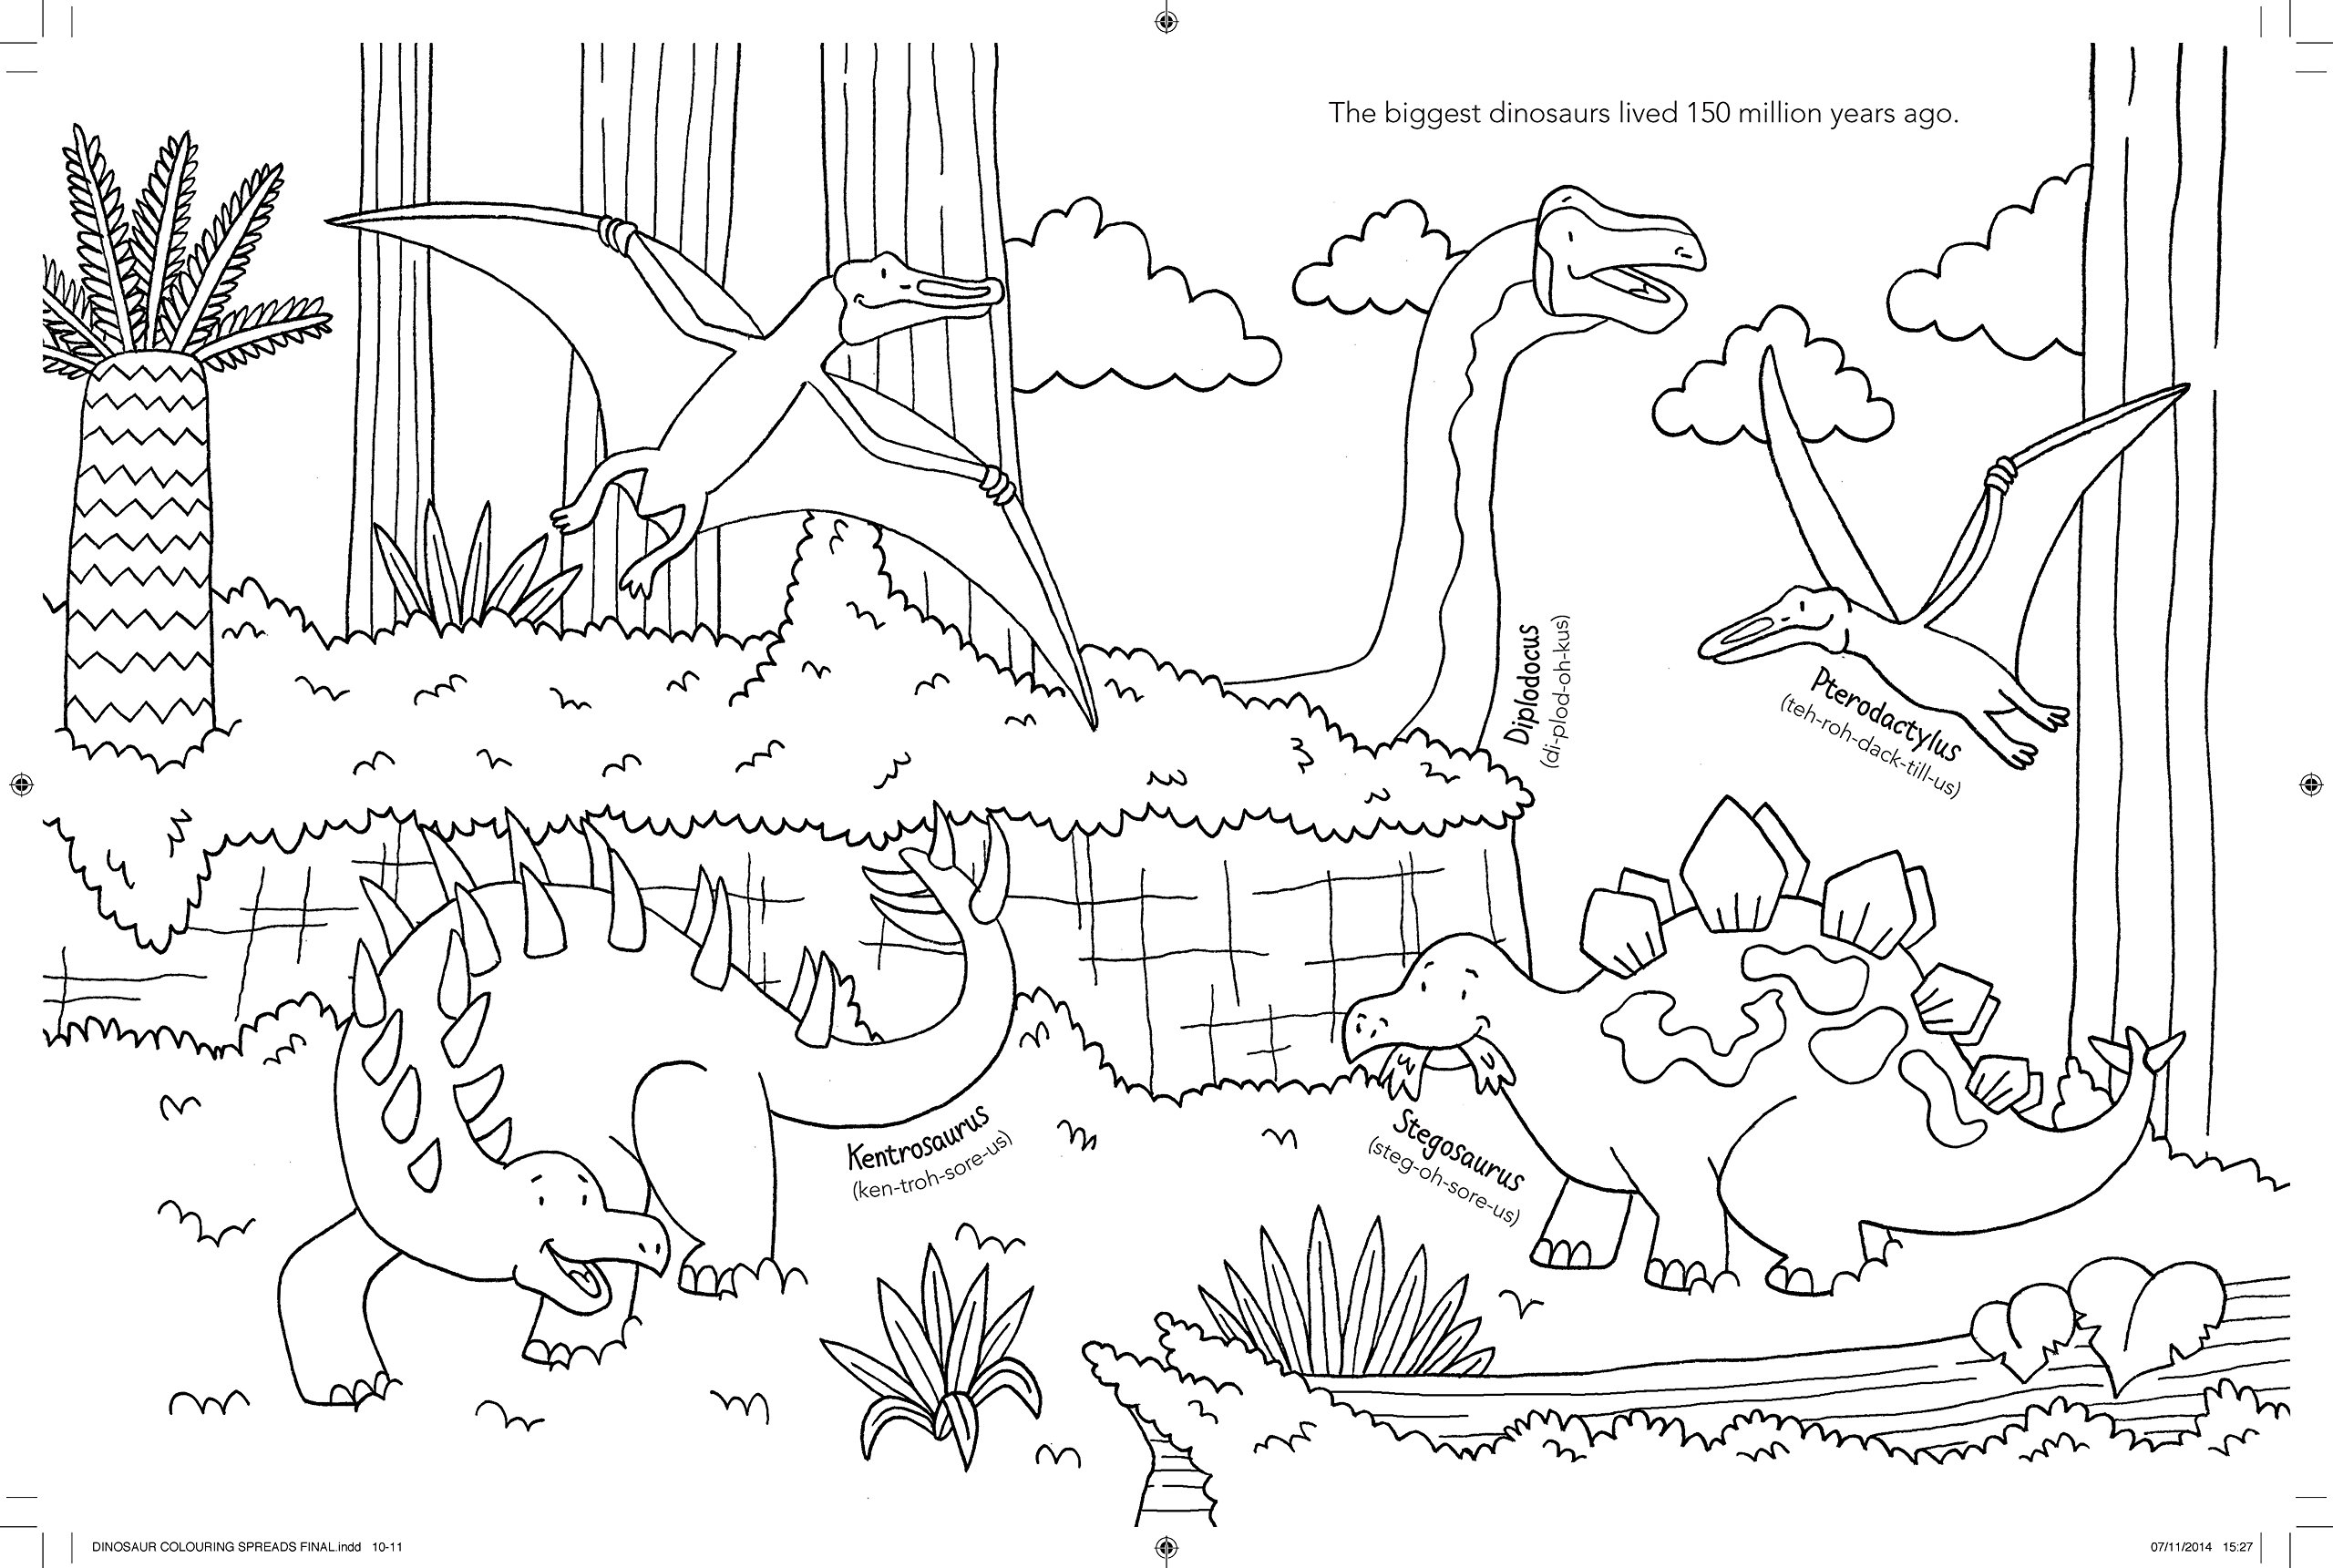 The Dinosaur Colouring Book Jake McDonald 9781780553511 Amazon Books